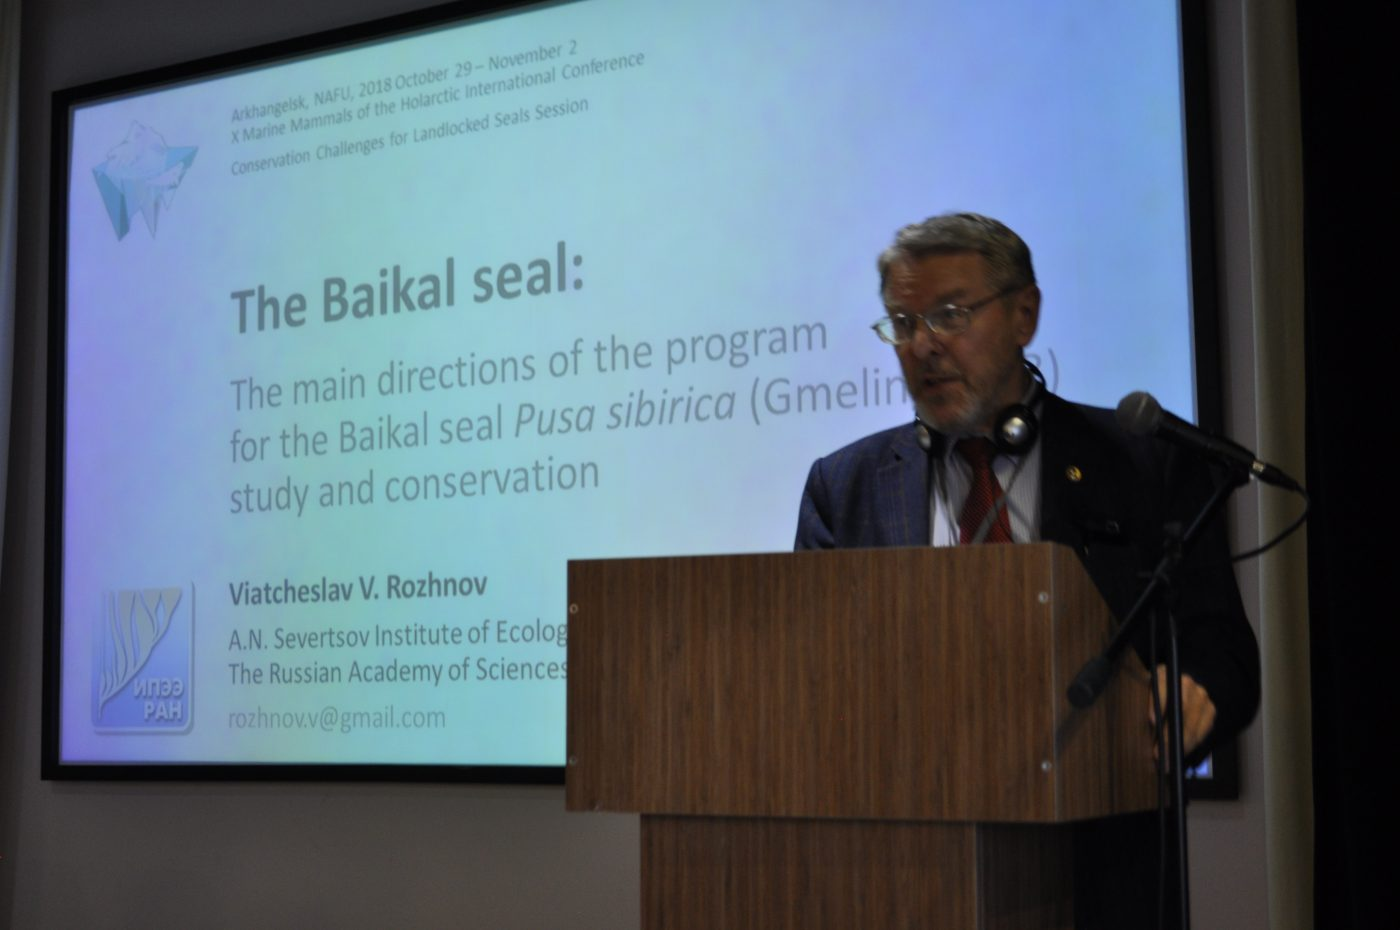 Program on the research of the Baikal seal was presented at 10th International Scientific Conference in Arkhangelsk